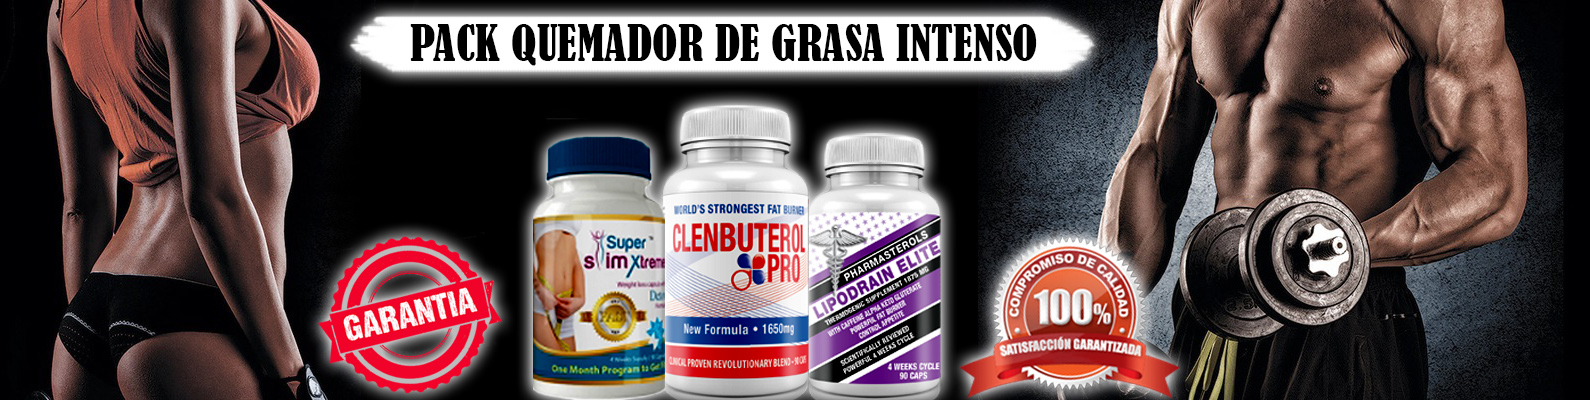 PACK ULTRA INTENSO 3 PRODUCTOS